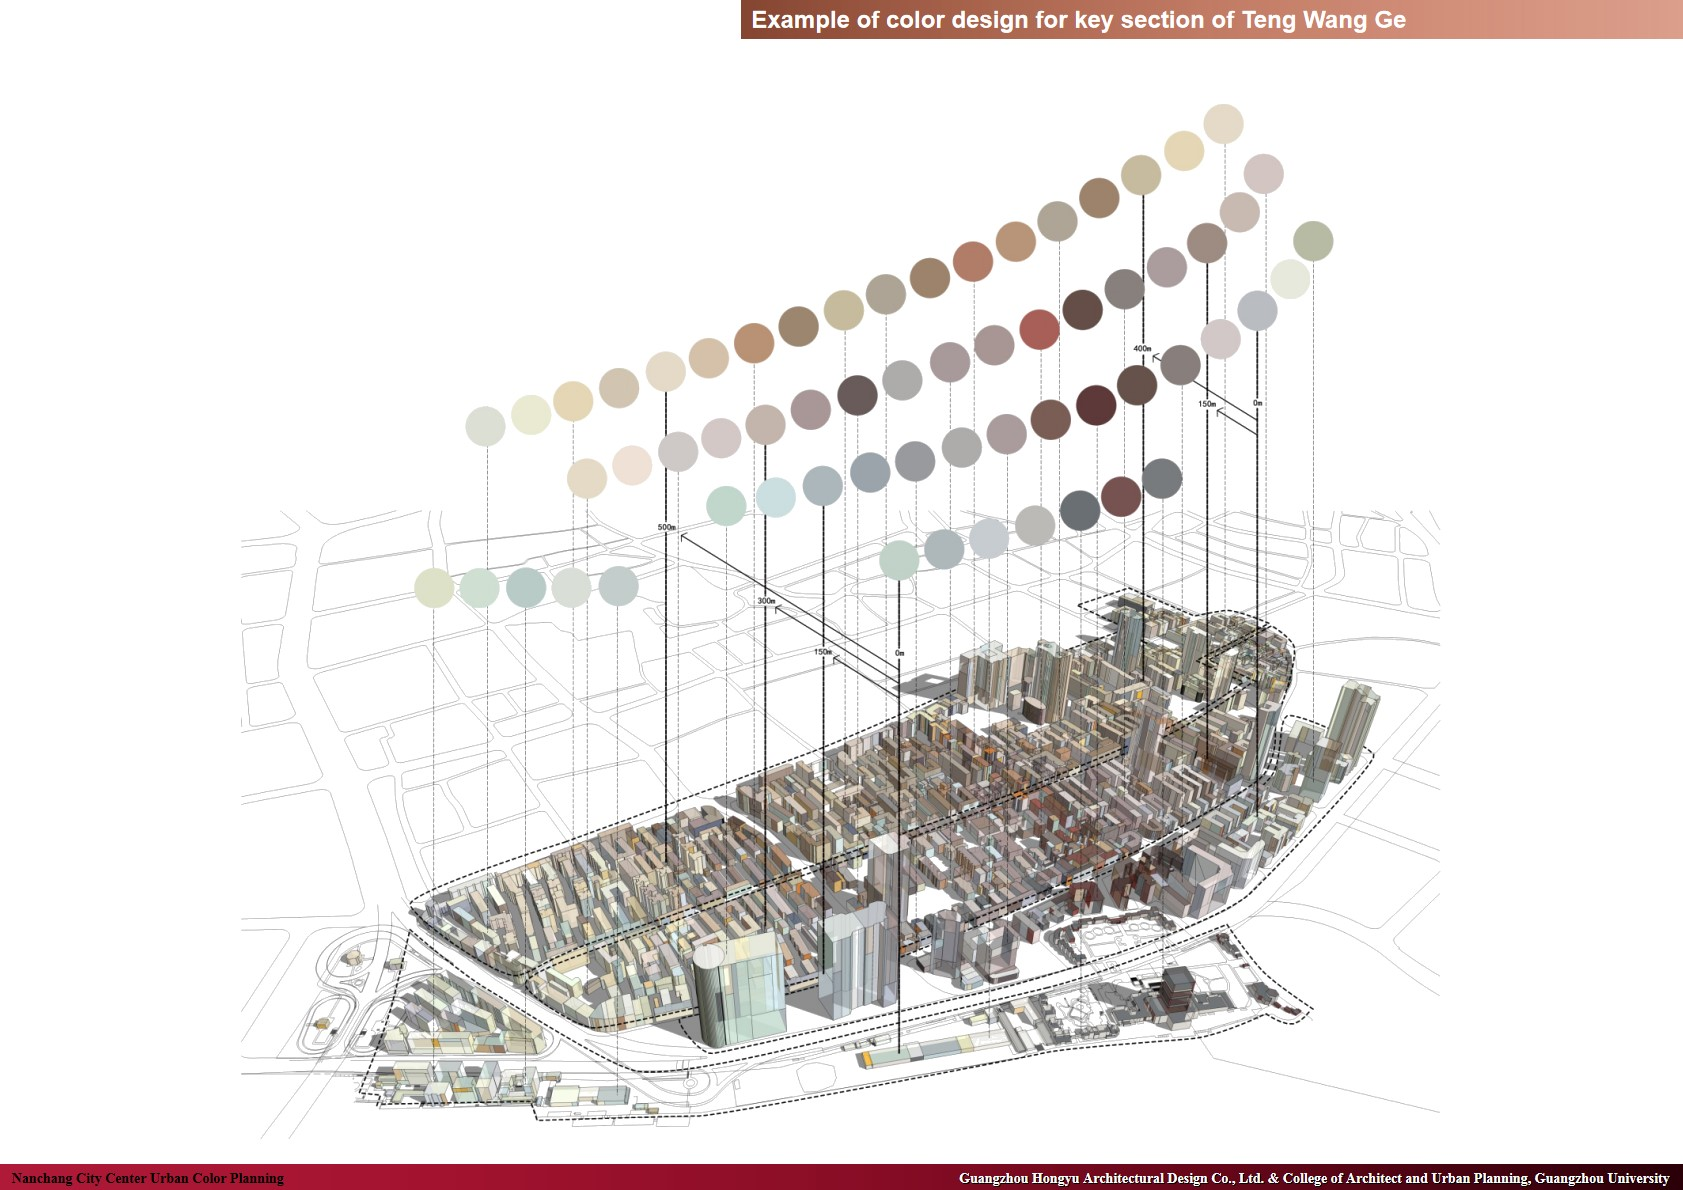 Urban color planning guidelines for key areas of Teng Wang Ge1 Guangzhou Hongyu Architectural Design Co., Ltd. & College of Architect and Urban Planning, Guangzhou University}